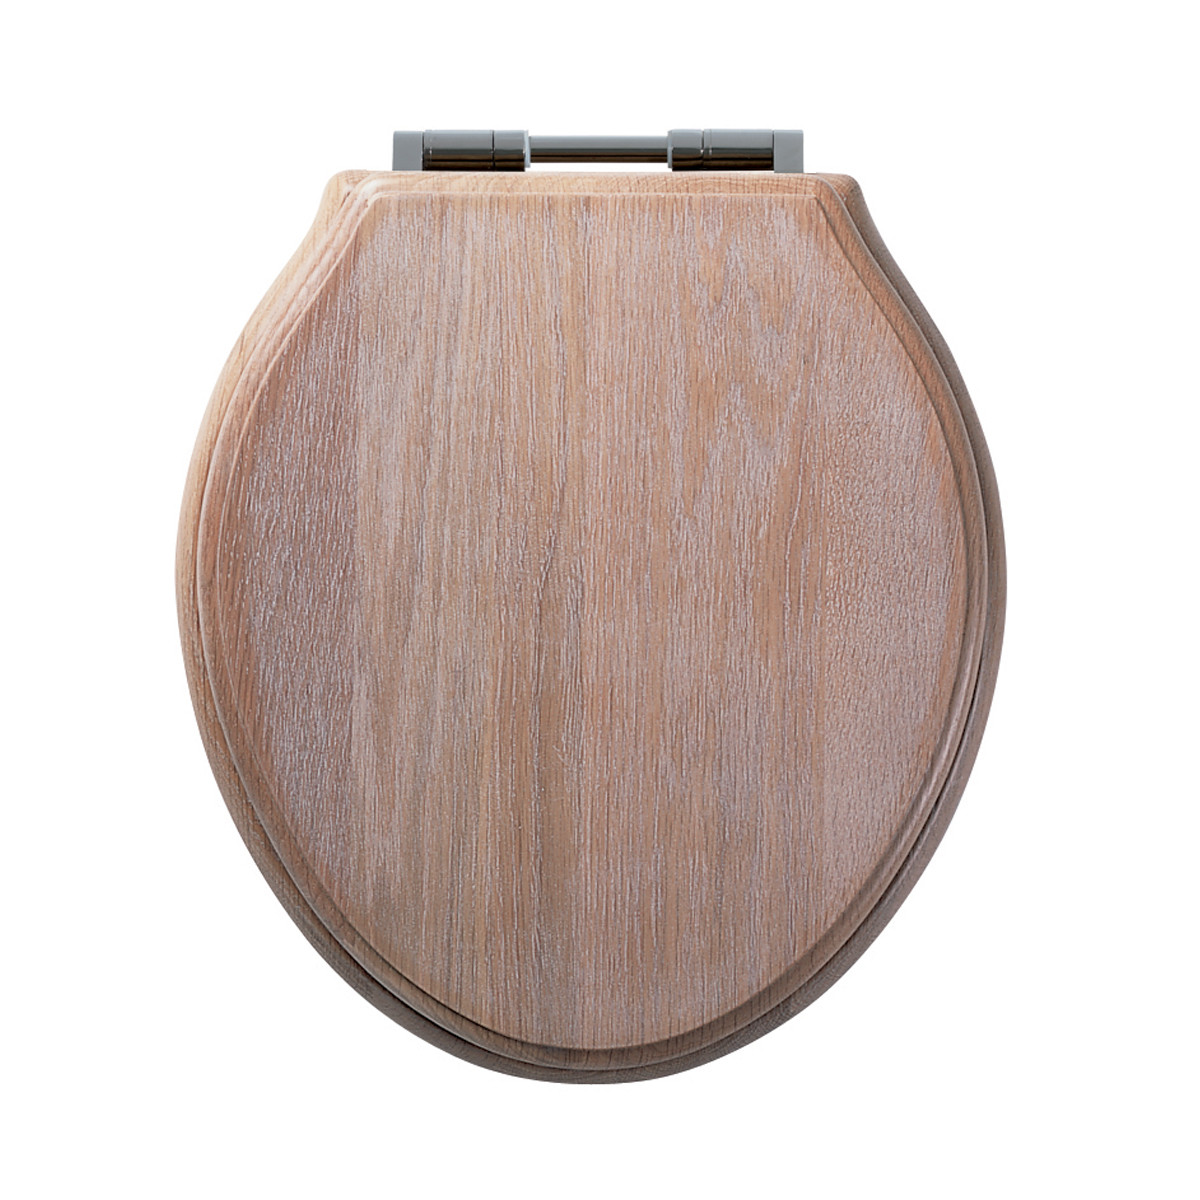 Captivating Wooden Soft Close Toilet Seat Images